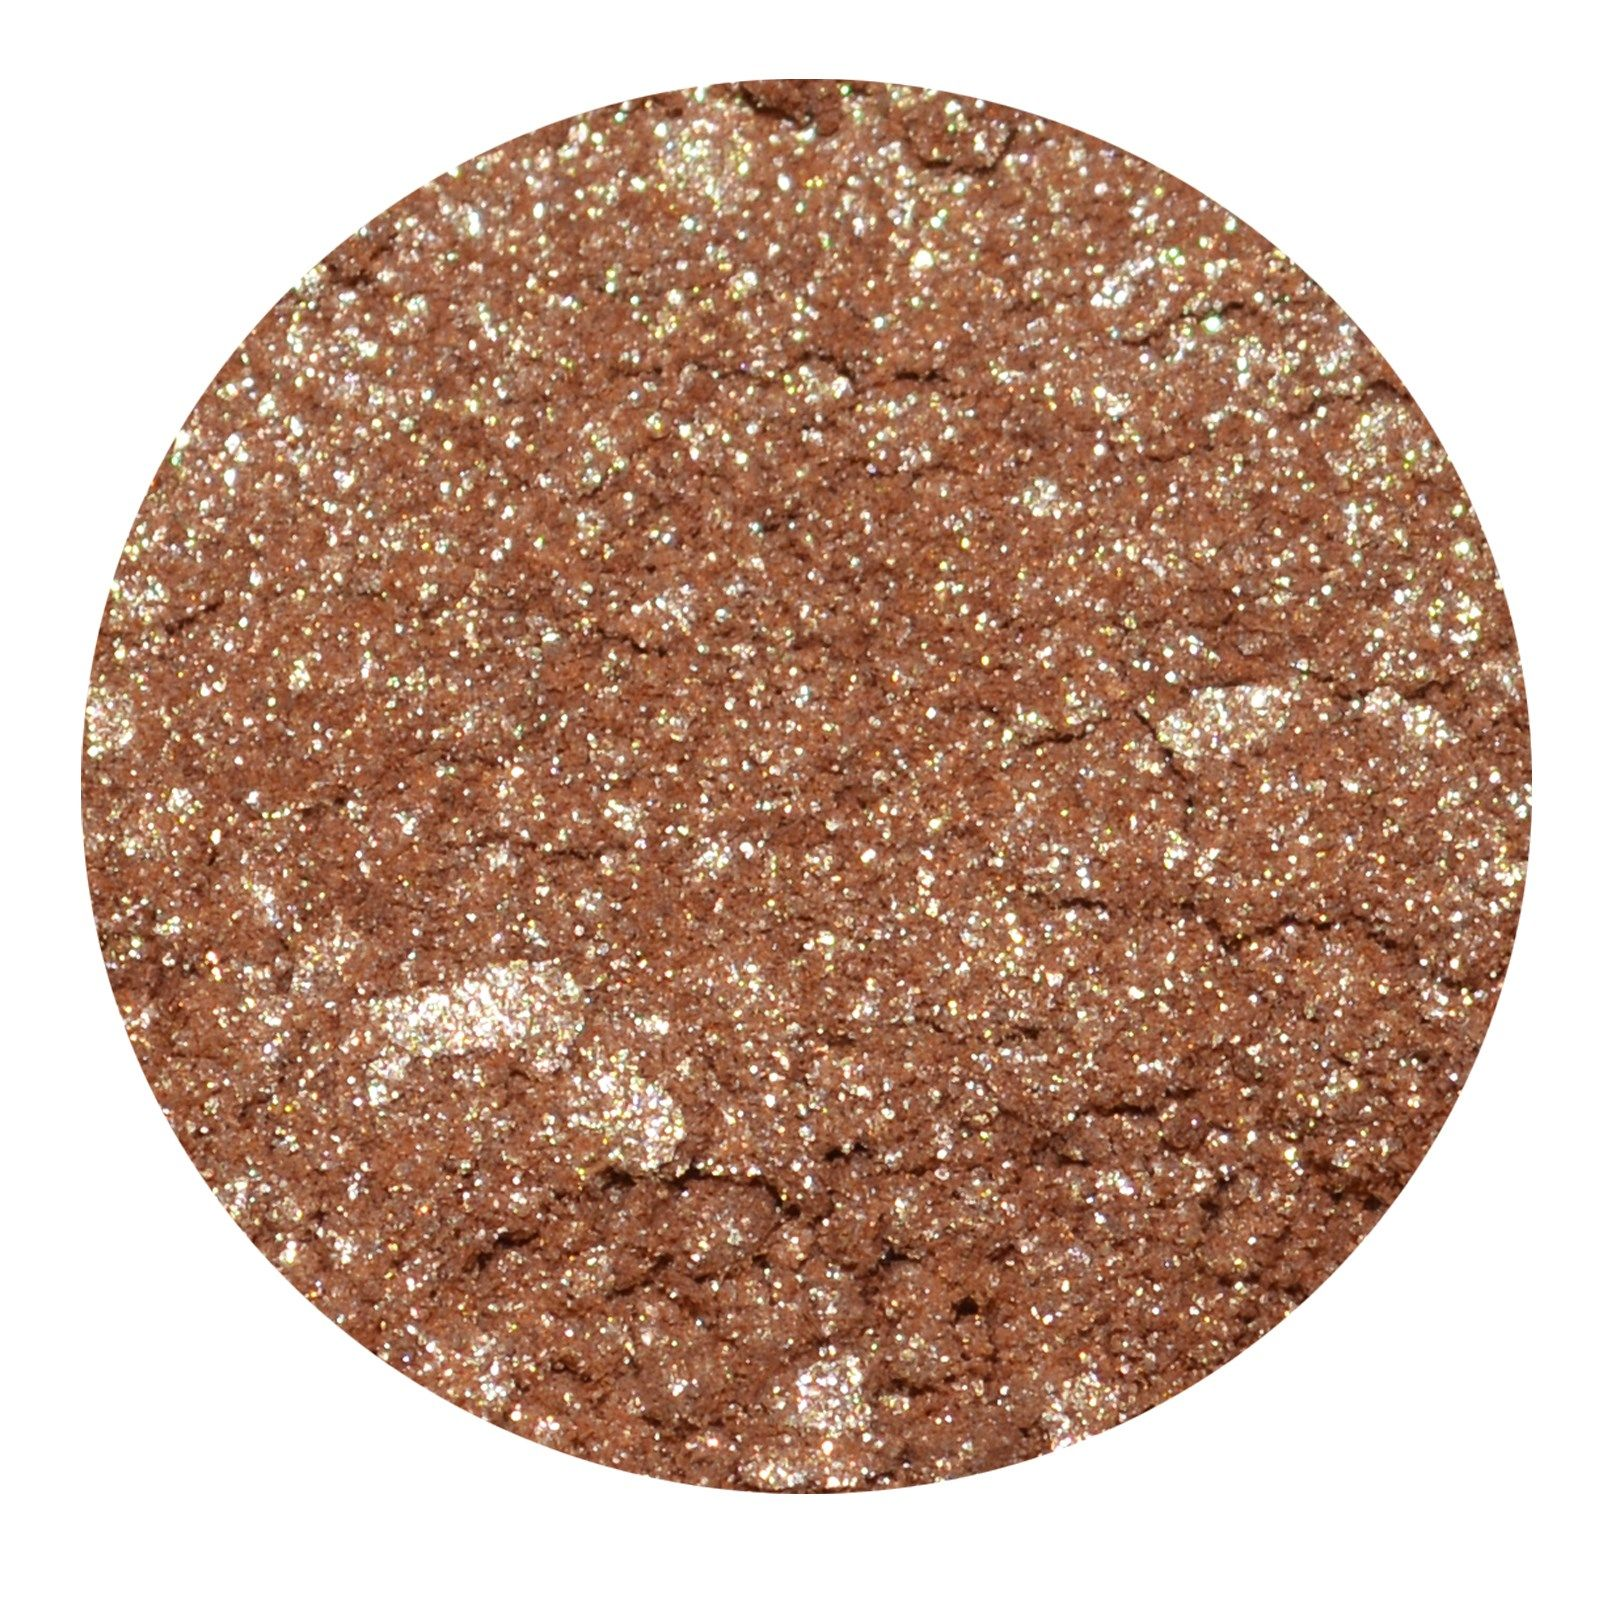 Honeybee Gardens, PowderColors Stackable Mineral Color, Satin Sheets.The Palest of Sparkly Peaches with Gold Highlights.These beautiful loose powders can be used as eyeshadows, eyeliners, blushes, and even mixed with our Clear Water Colors Nail Enamel to create custom polish colors! PowderColors is totally vegan!